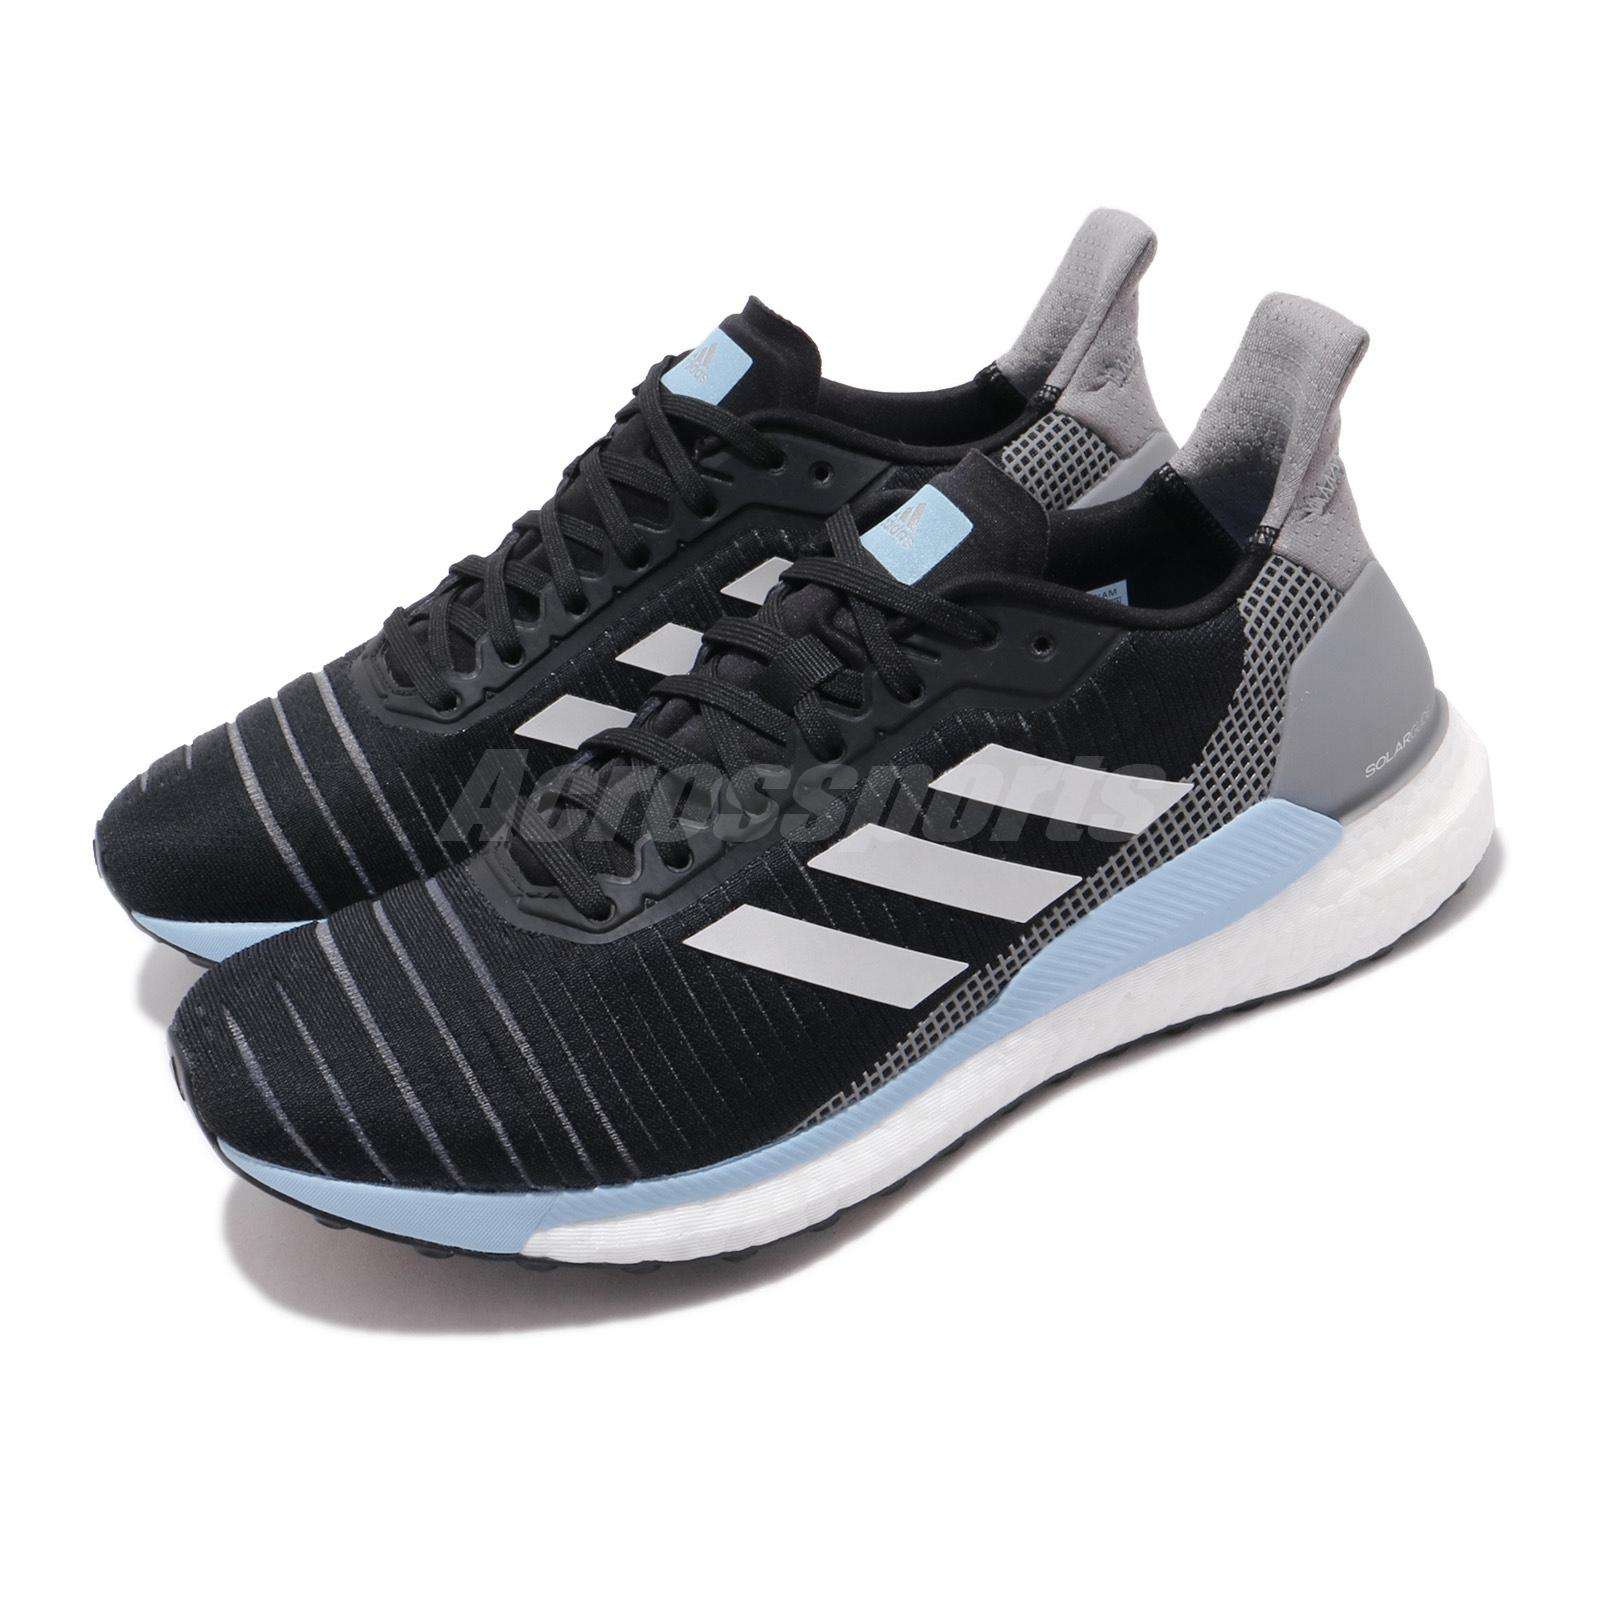 Accesible compensar origen  adidas Solar Glide 19 W Boost Black Grey Blue White Women Running Shoes  G28038 | eBay